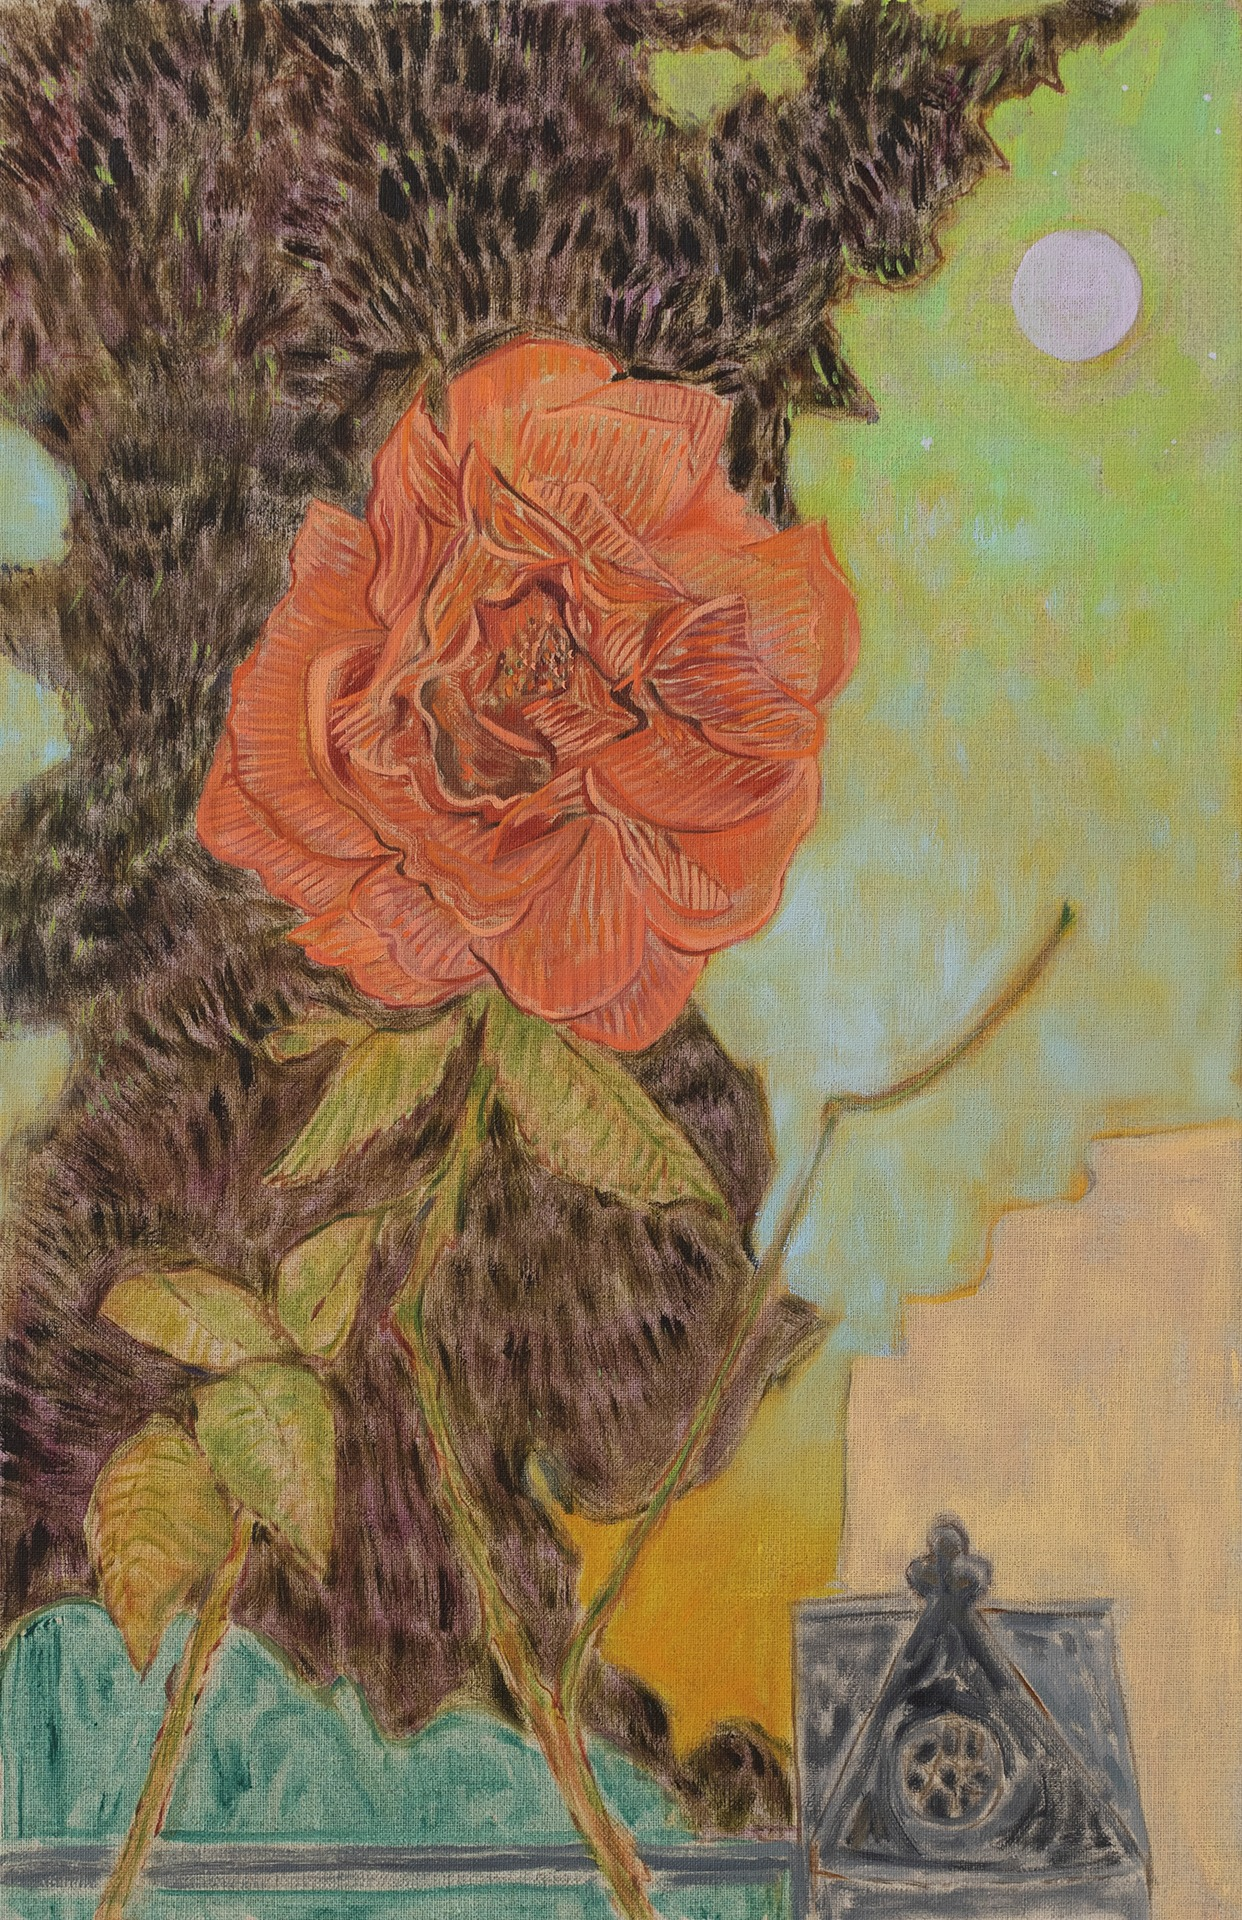 A painting by Hayley Barker titled Lorimer Street Rose, dated 2021.